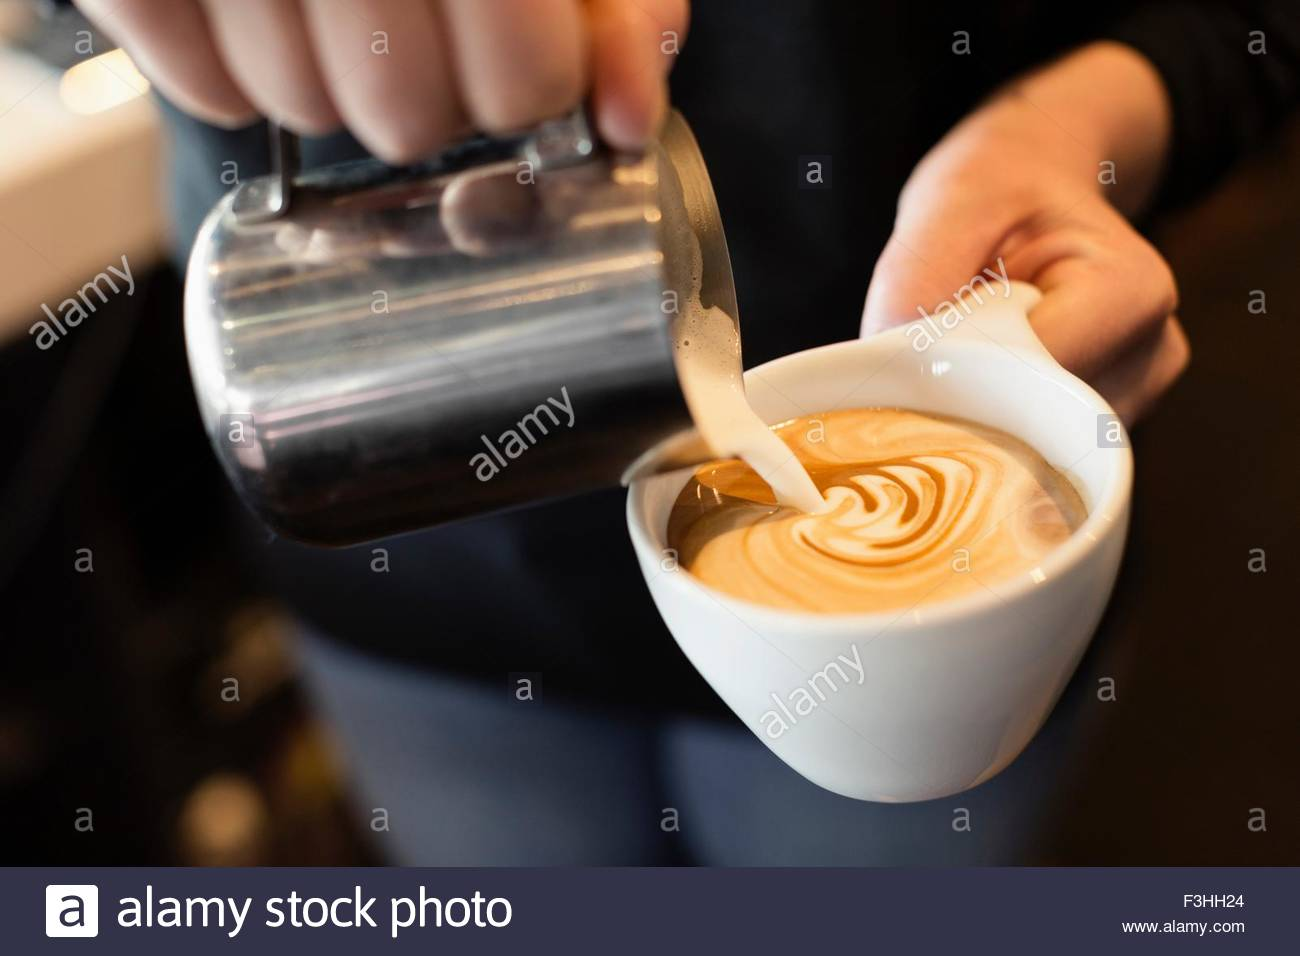 Coffee shop barista pouring milk into coffee, mid section, close-up - Stock Image